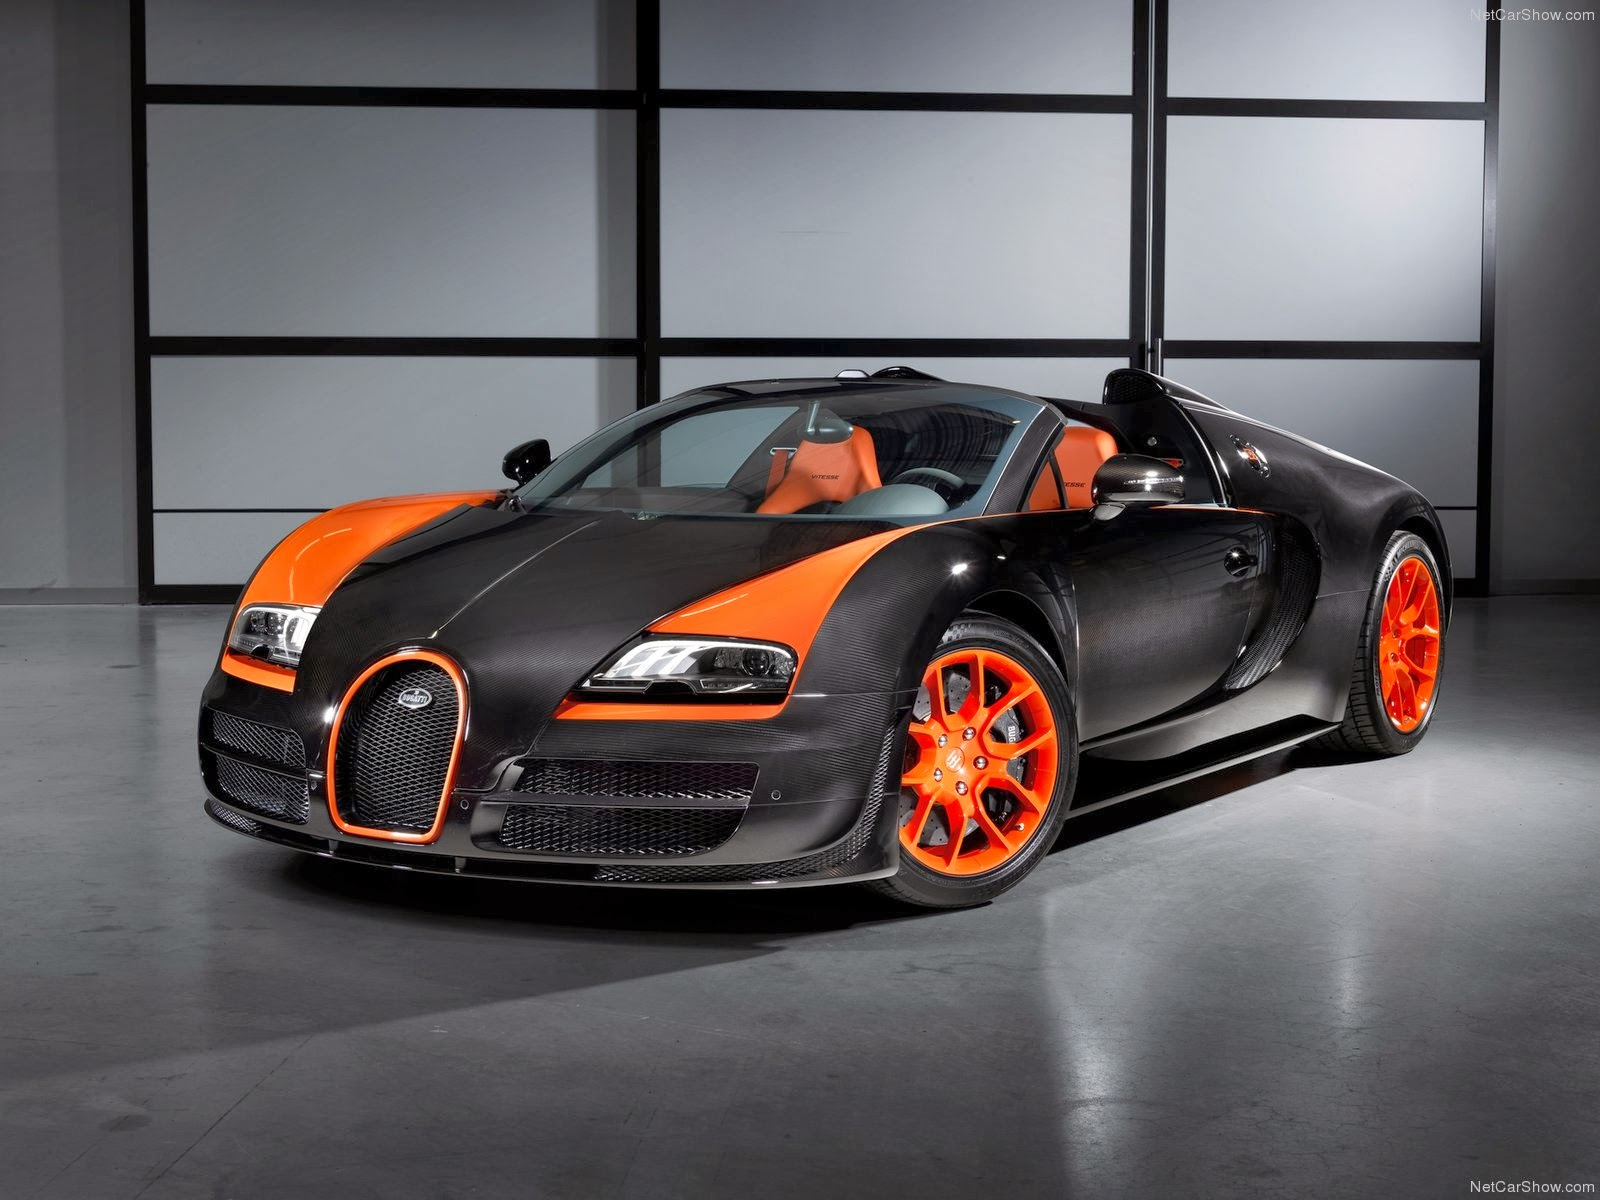 HD Cars Wallpapers: Bugatti Veyron HD Wallpapers